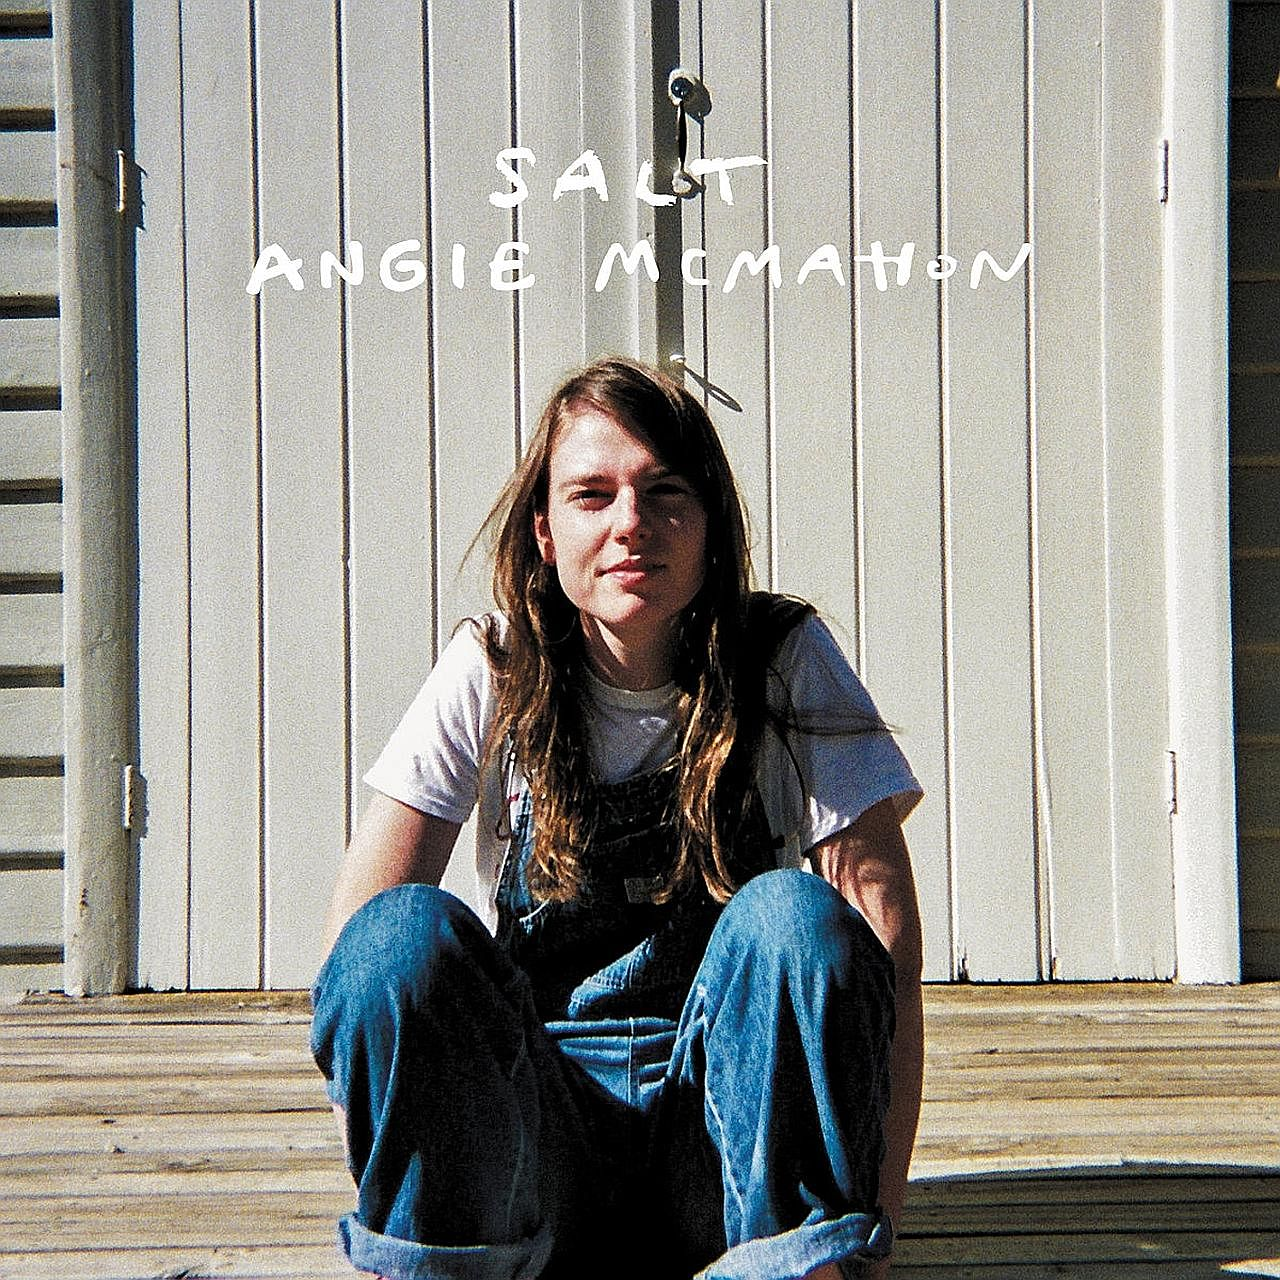 Hear tentativeness, vulnerability and anger in Melburnian Angie McMahon's richly nuanced record.